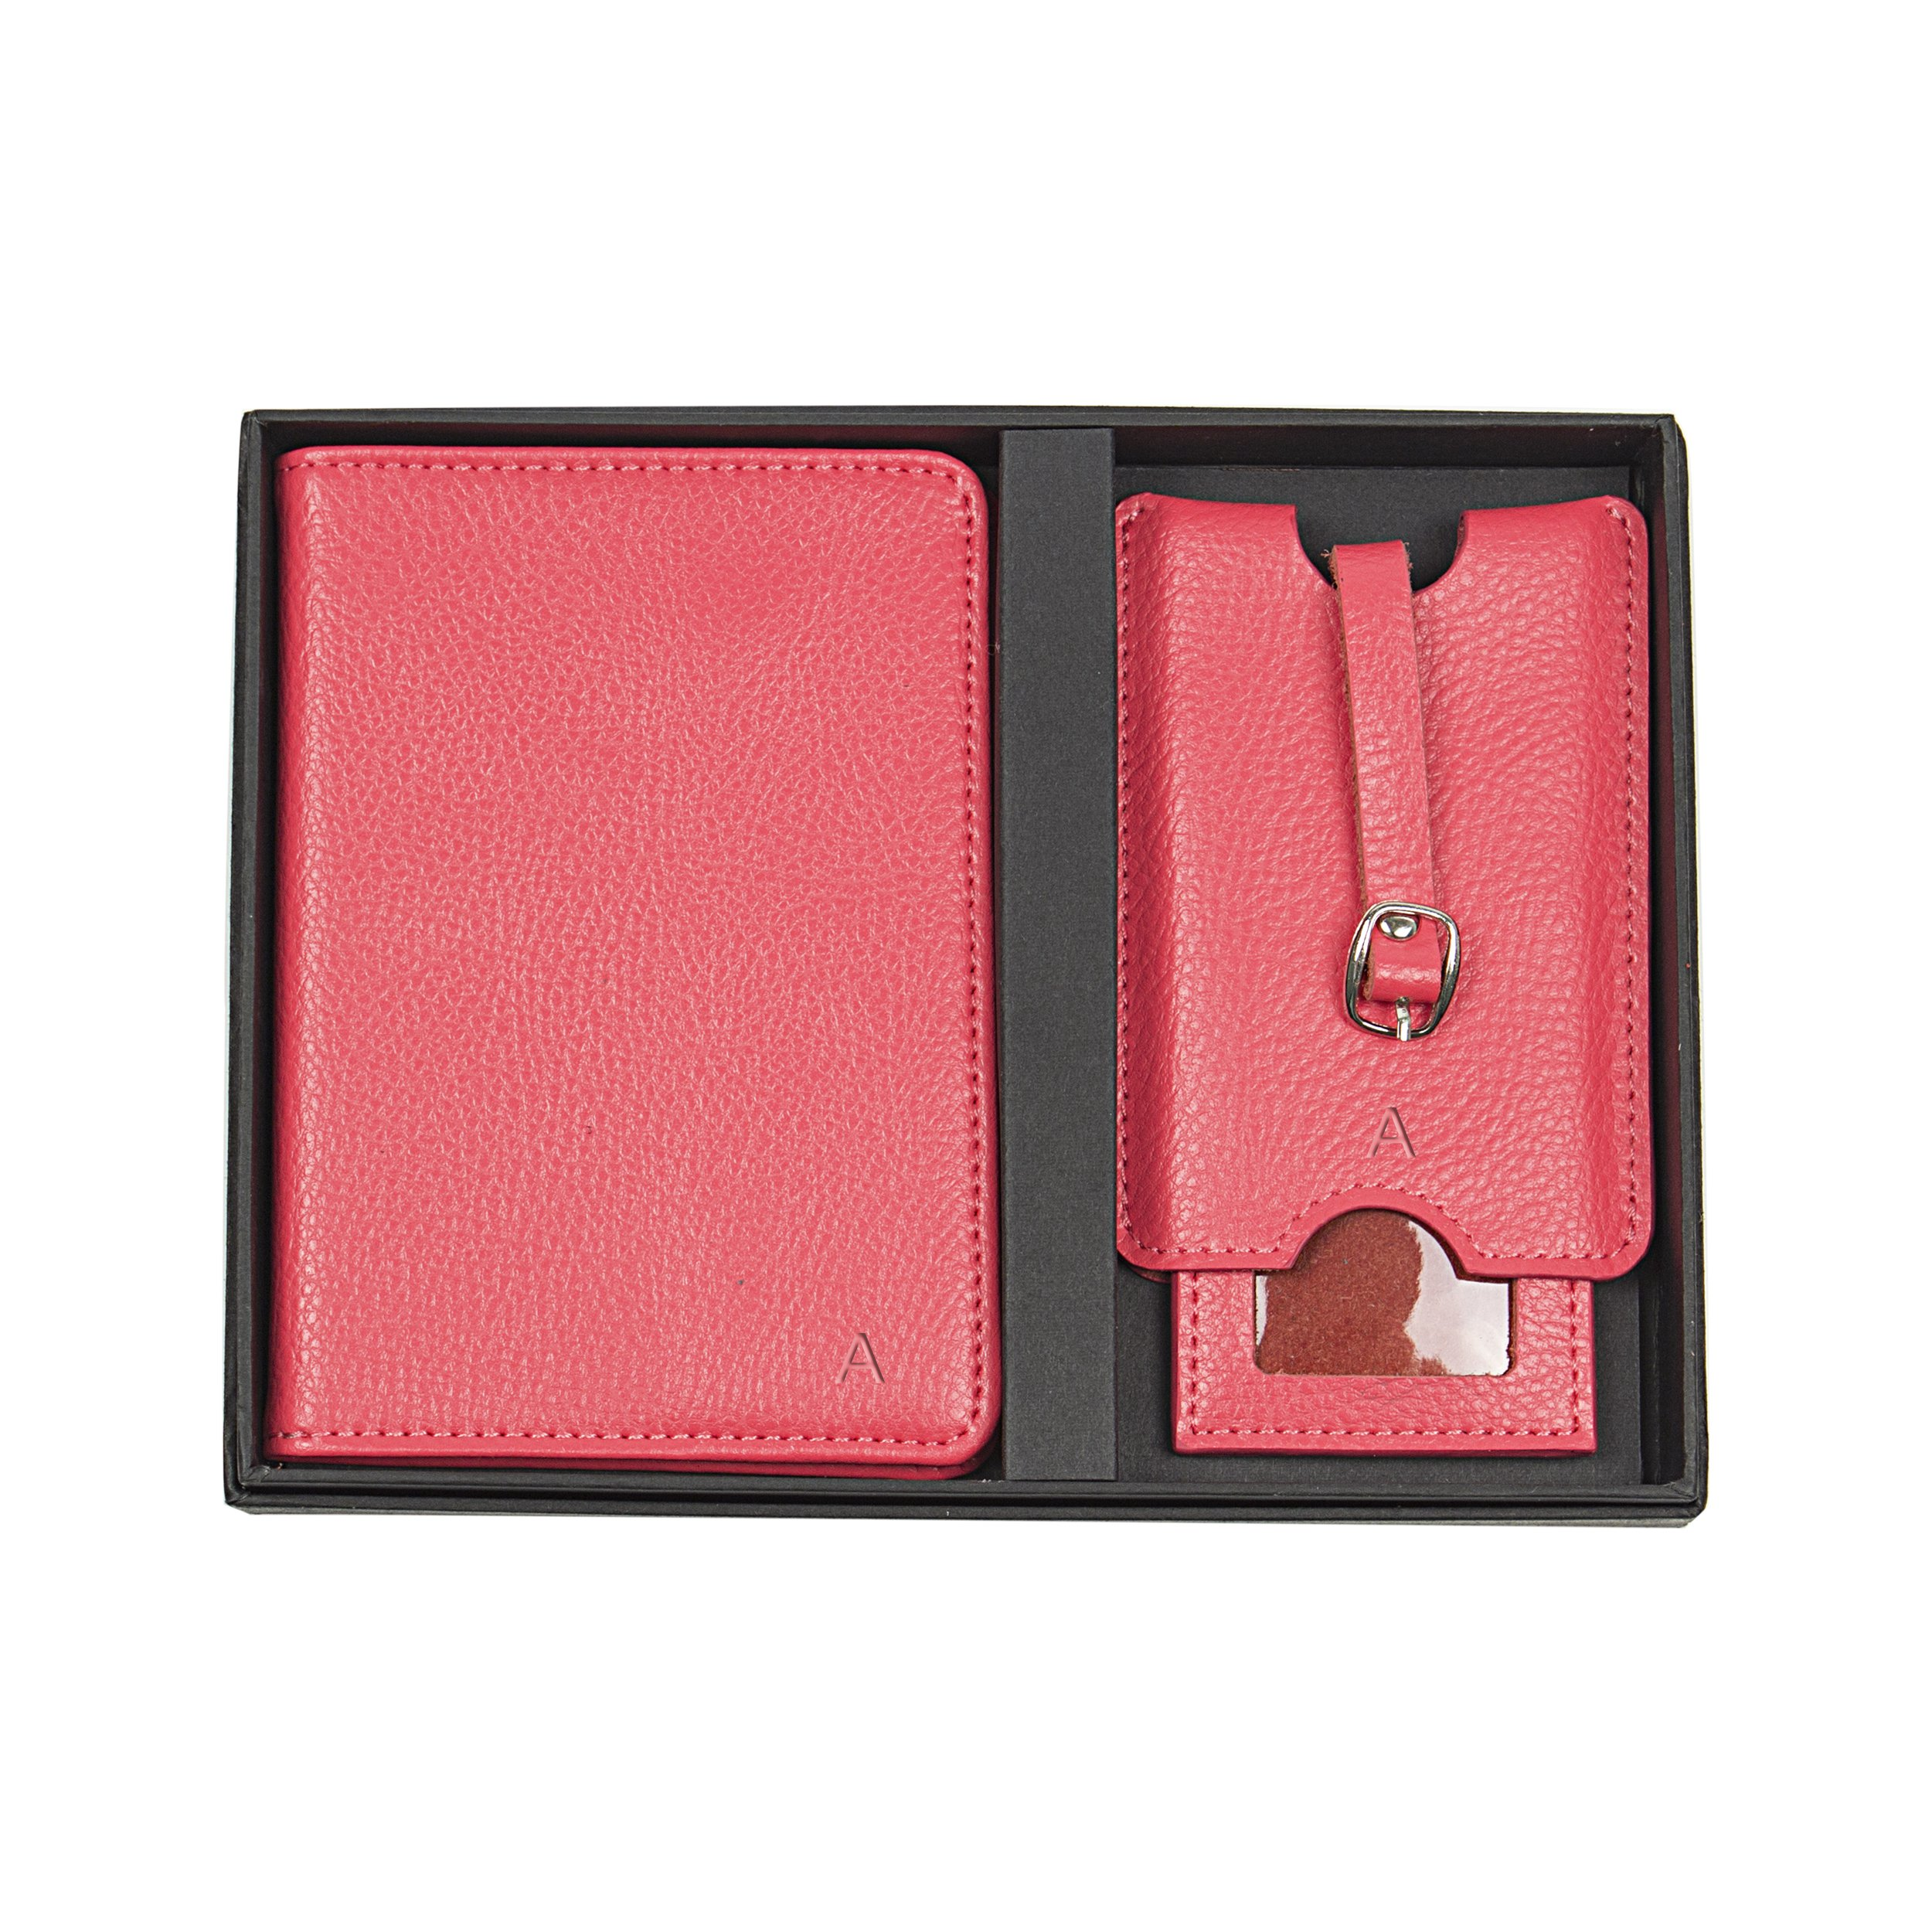 Cathy's Concepts Personalized Leather Passport Holder & Luggage Tag Set, Pink, Letter A